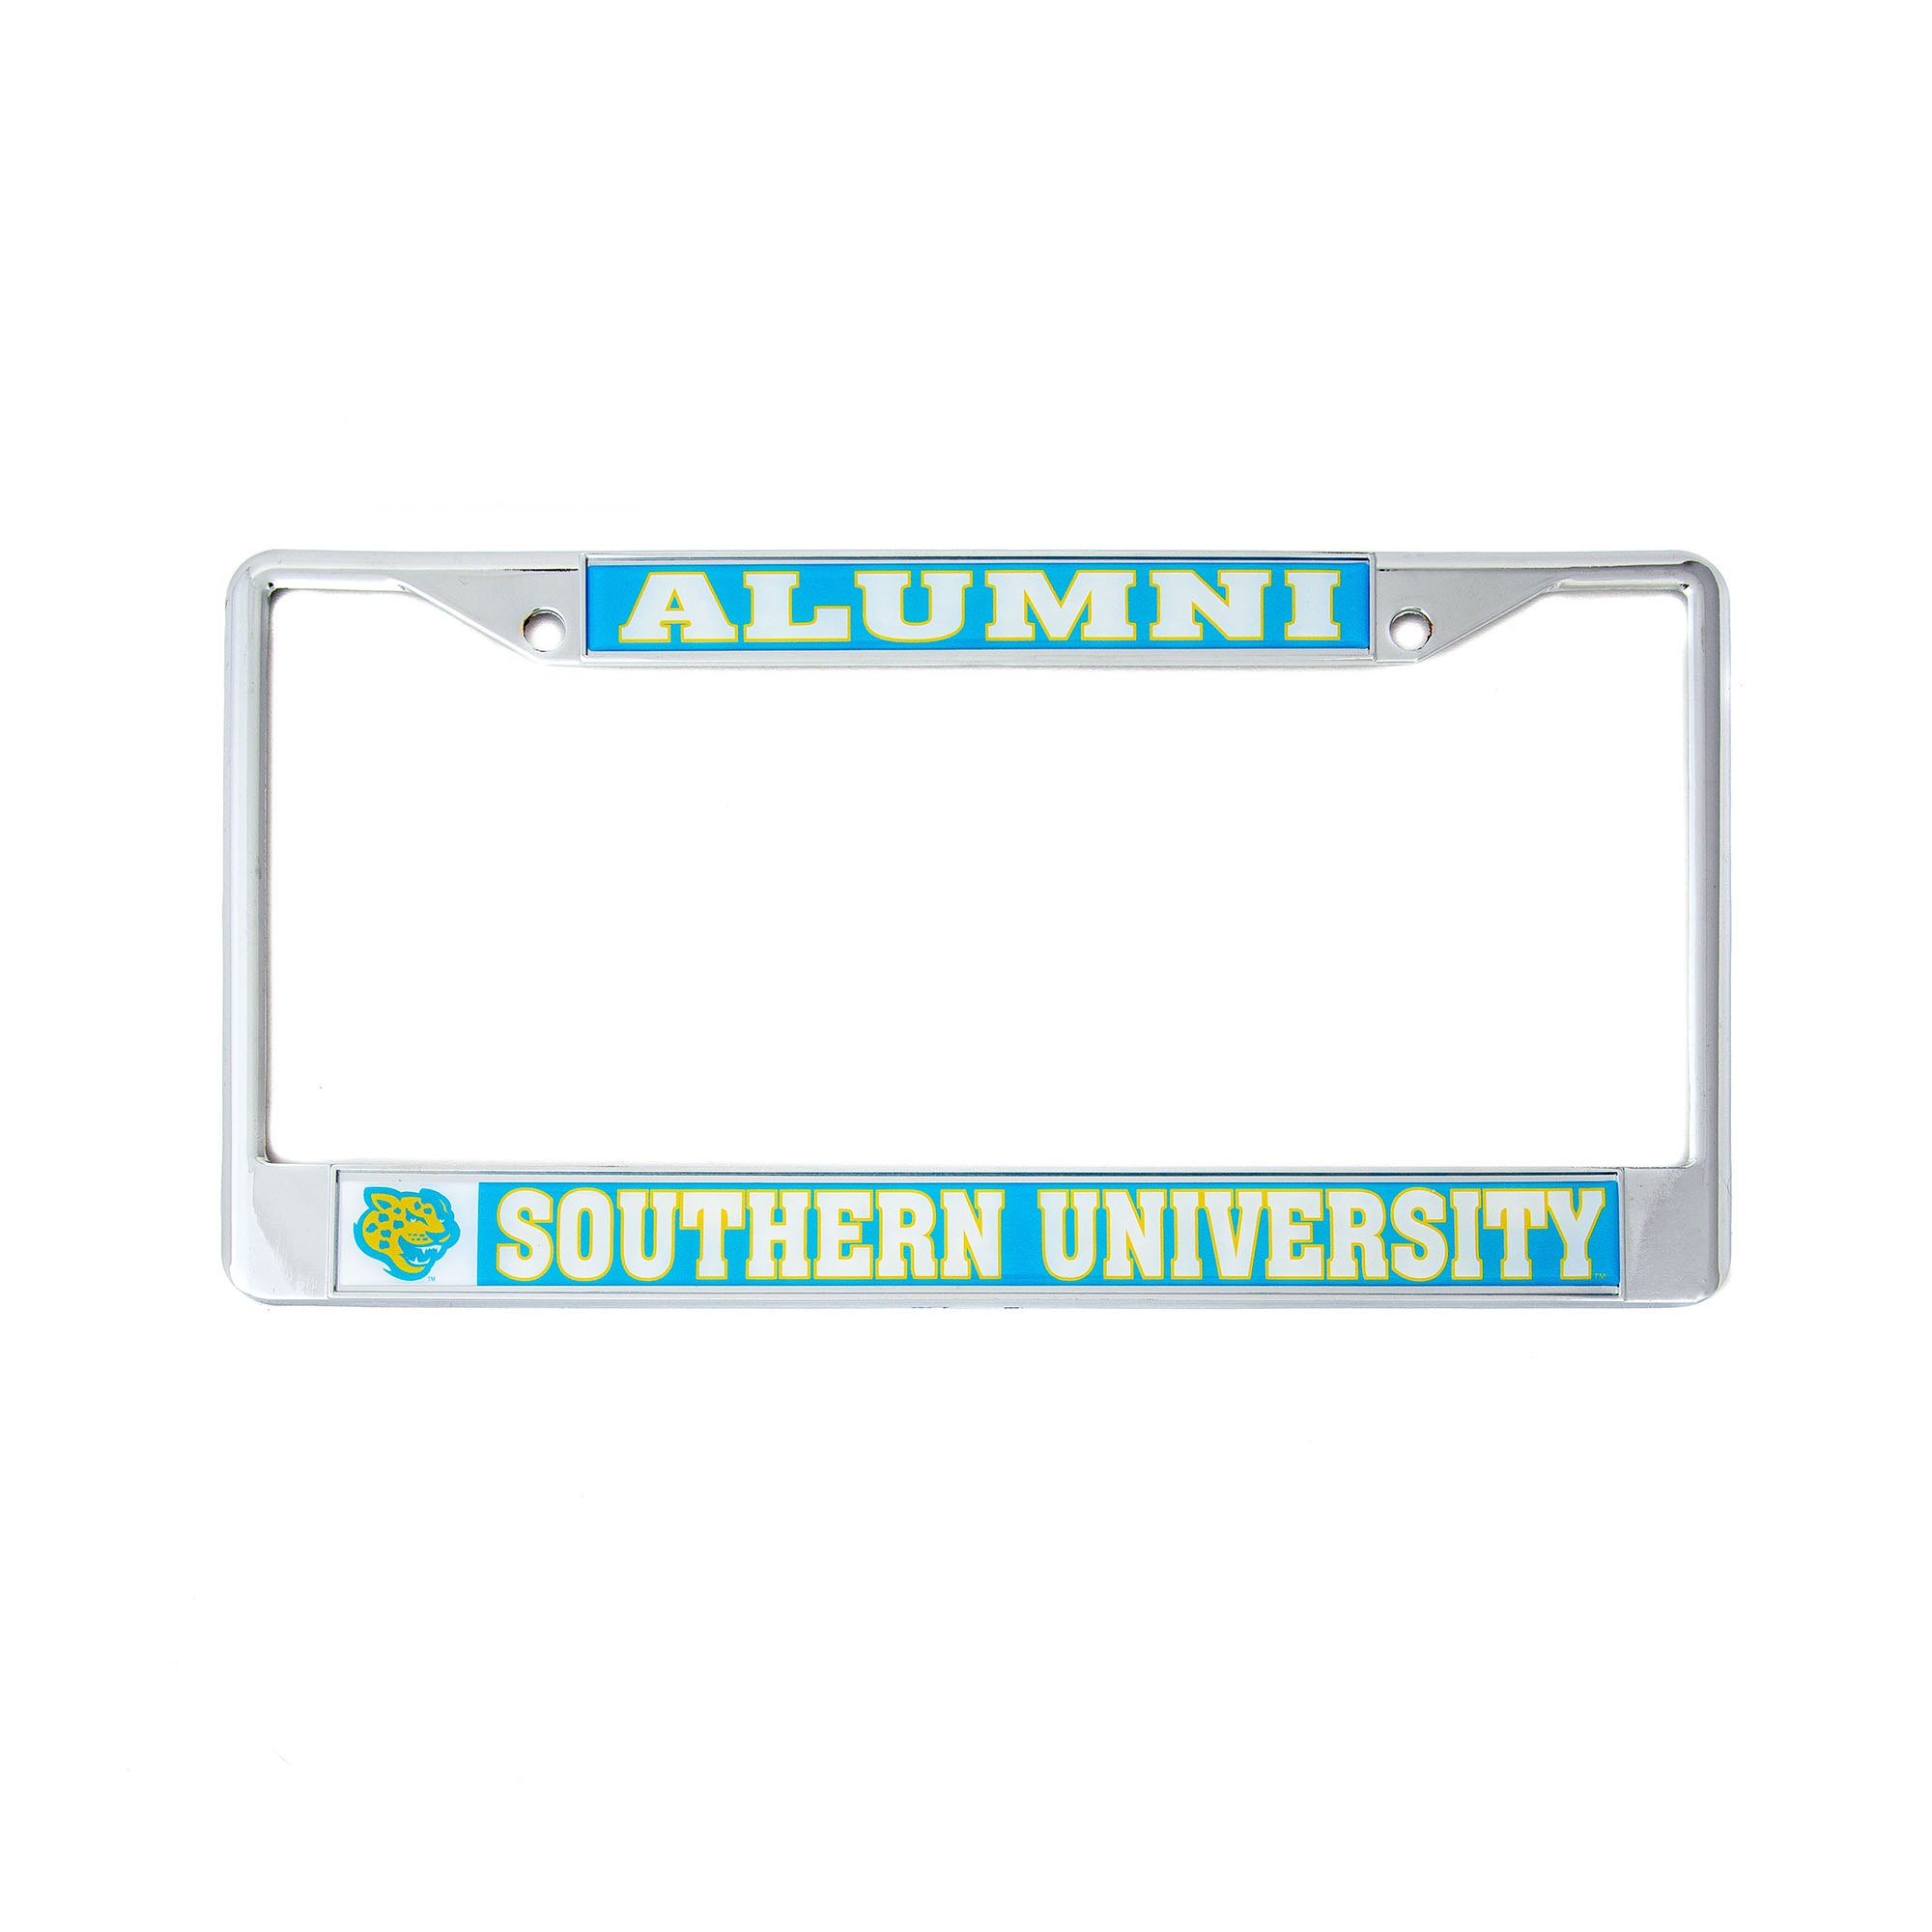 Desert Cactus US Air Force Dad License Plate Frame for Front Back of Car Officially Licensed United States Frame - Dad